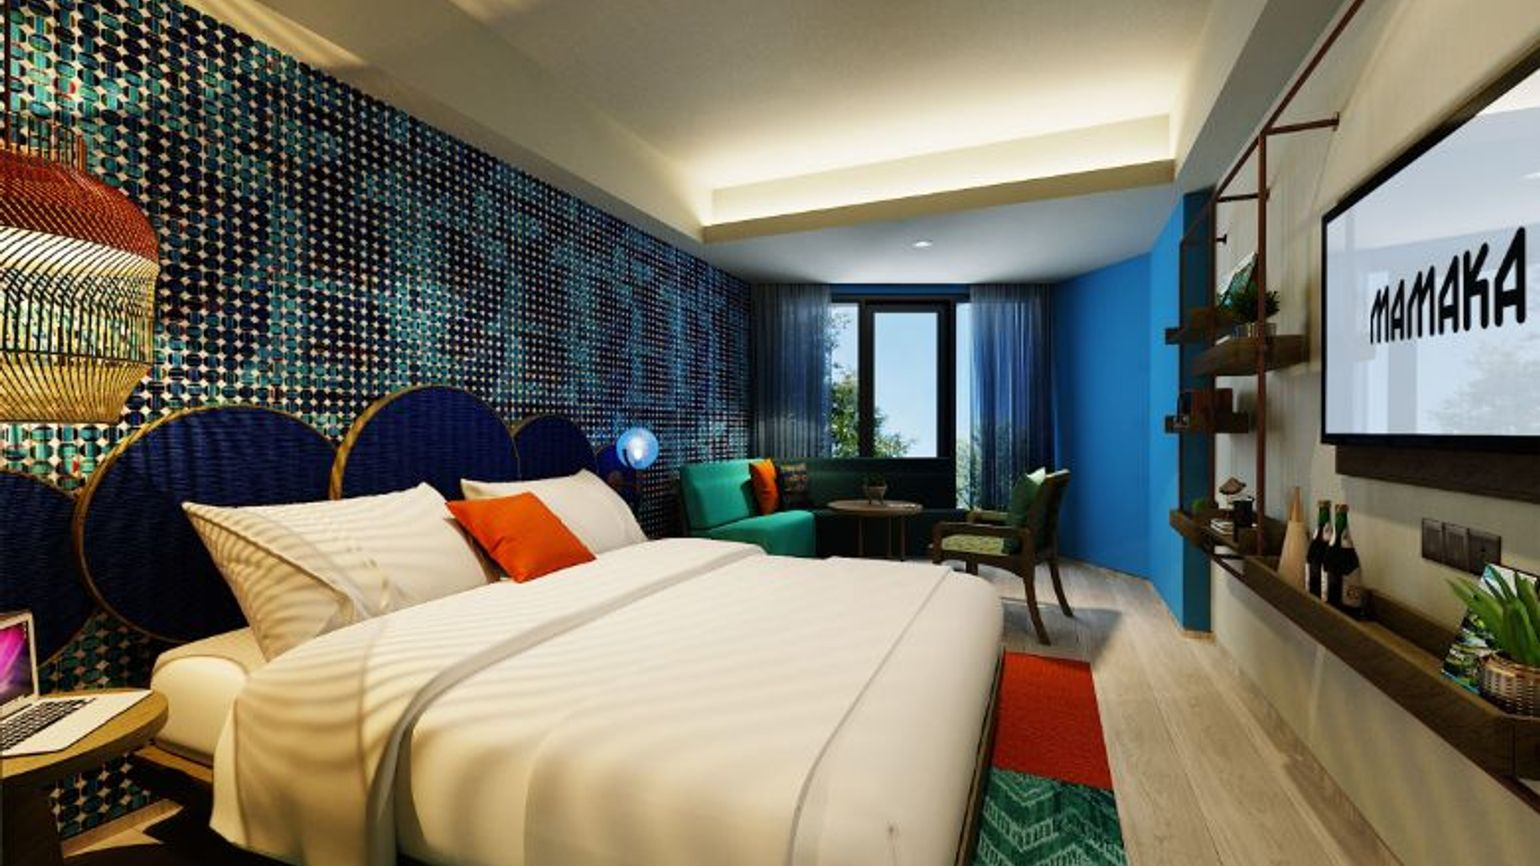 Ovolo plants first property in Indonesia